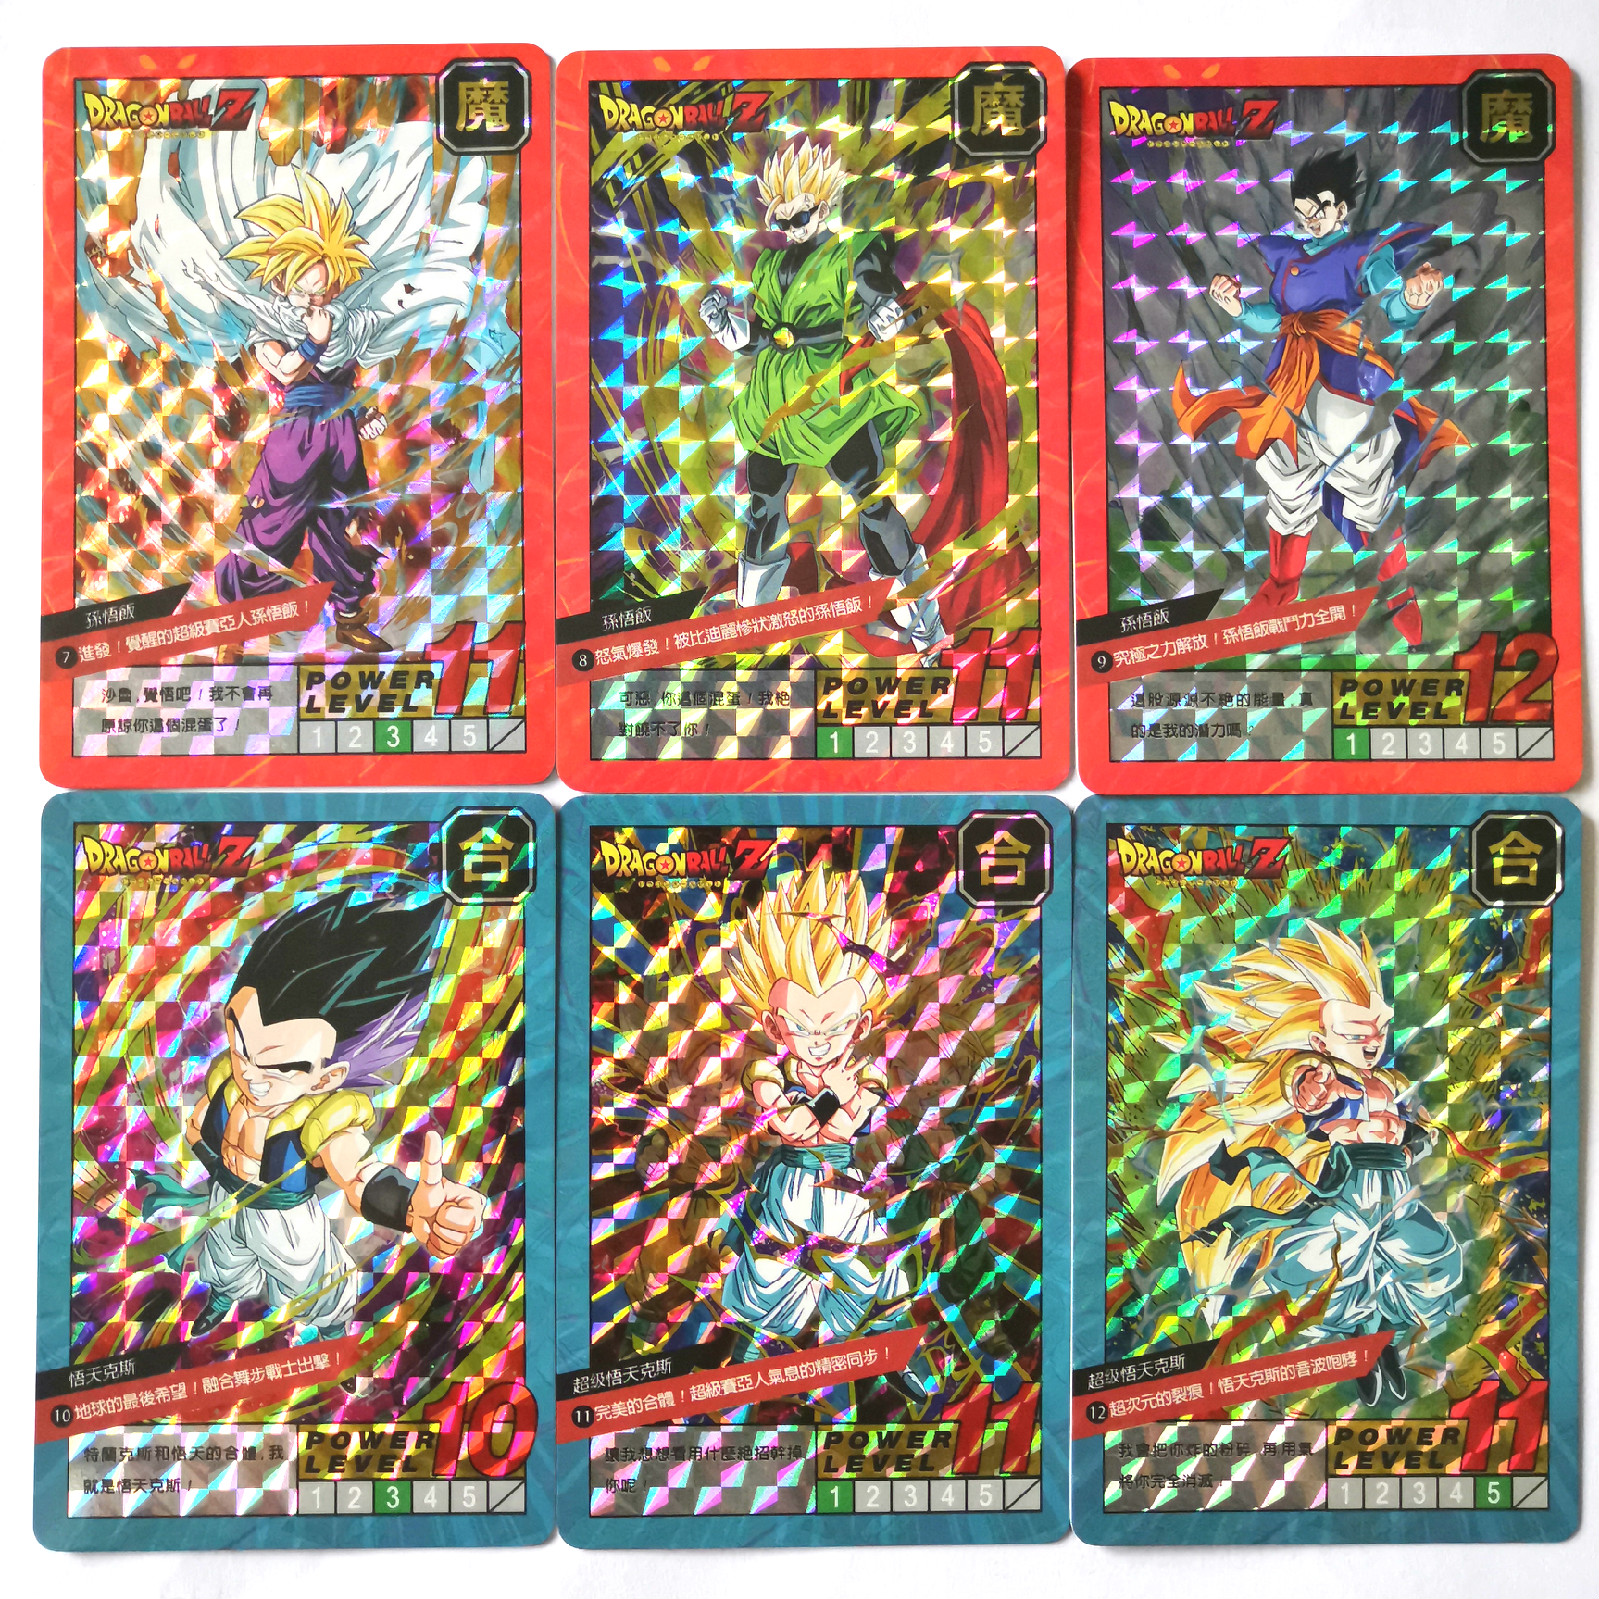 37pcs Super Dragon Ball Limited To 100 Sets Heroes Battle Card Ultra Instinct Goku Super Game Collection Anime Cards